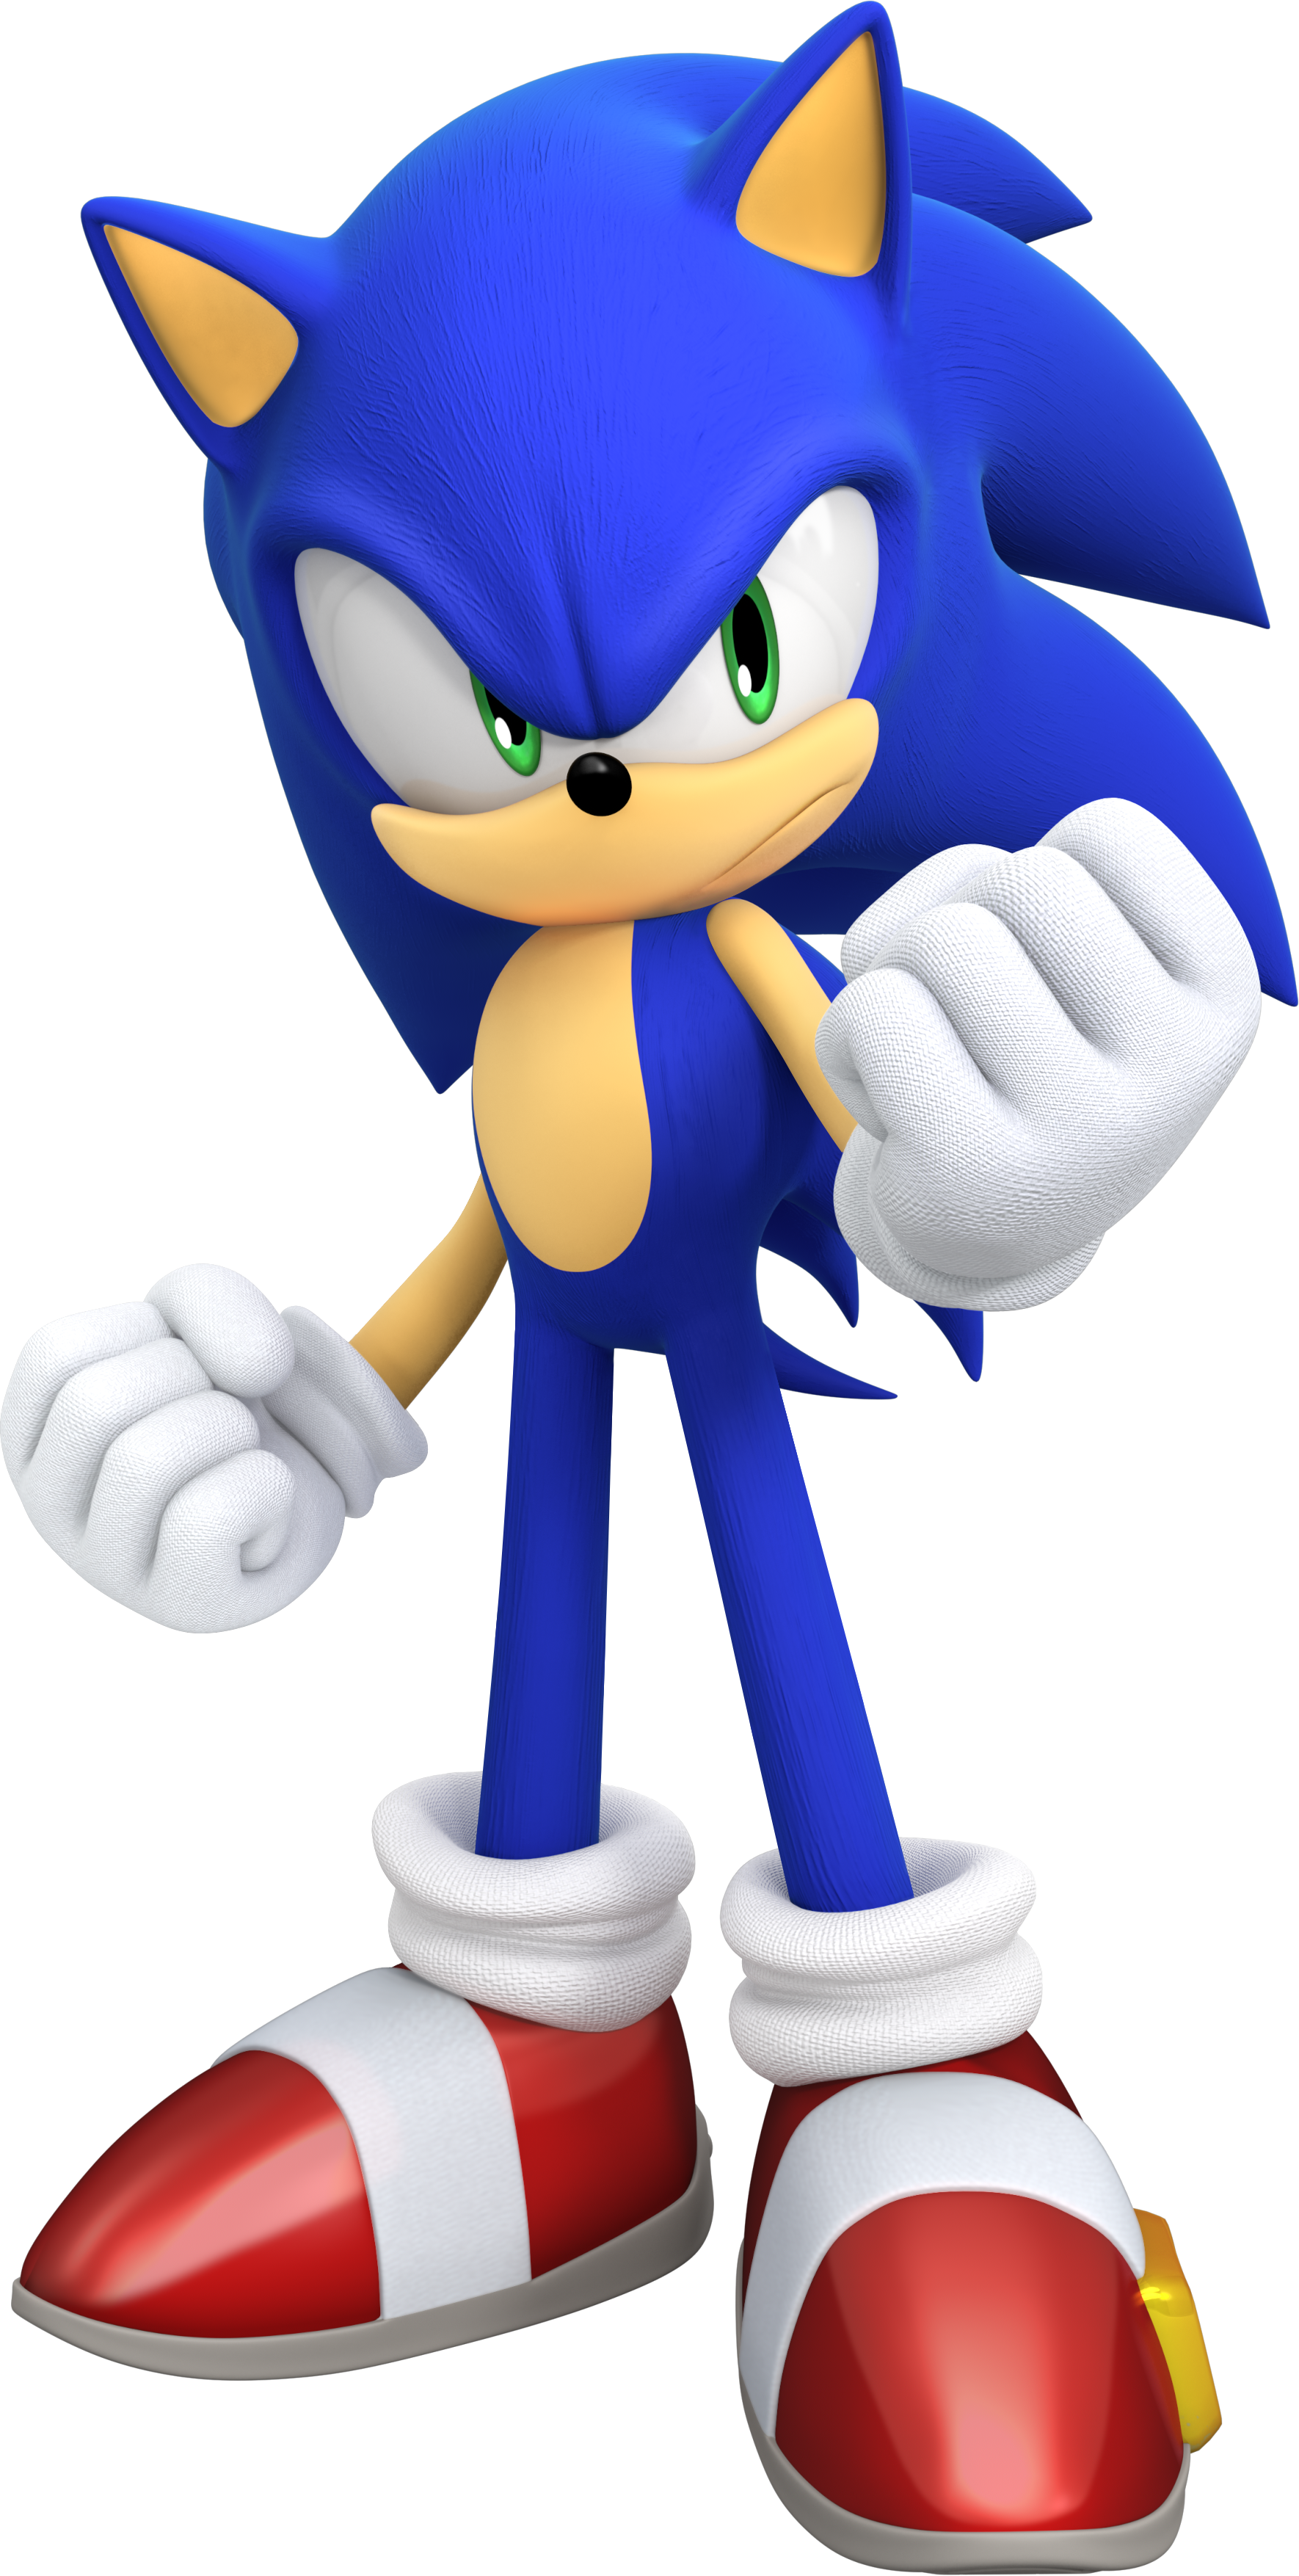 Sonic The Hedgehog Sonic Universe Wiki Fandom